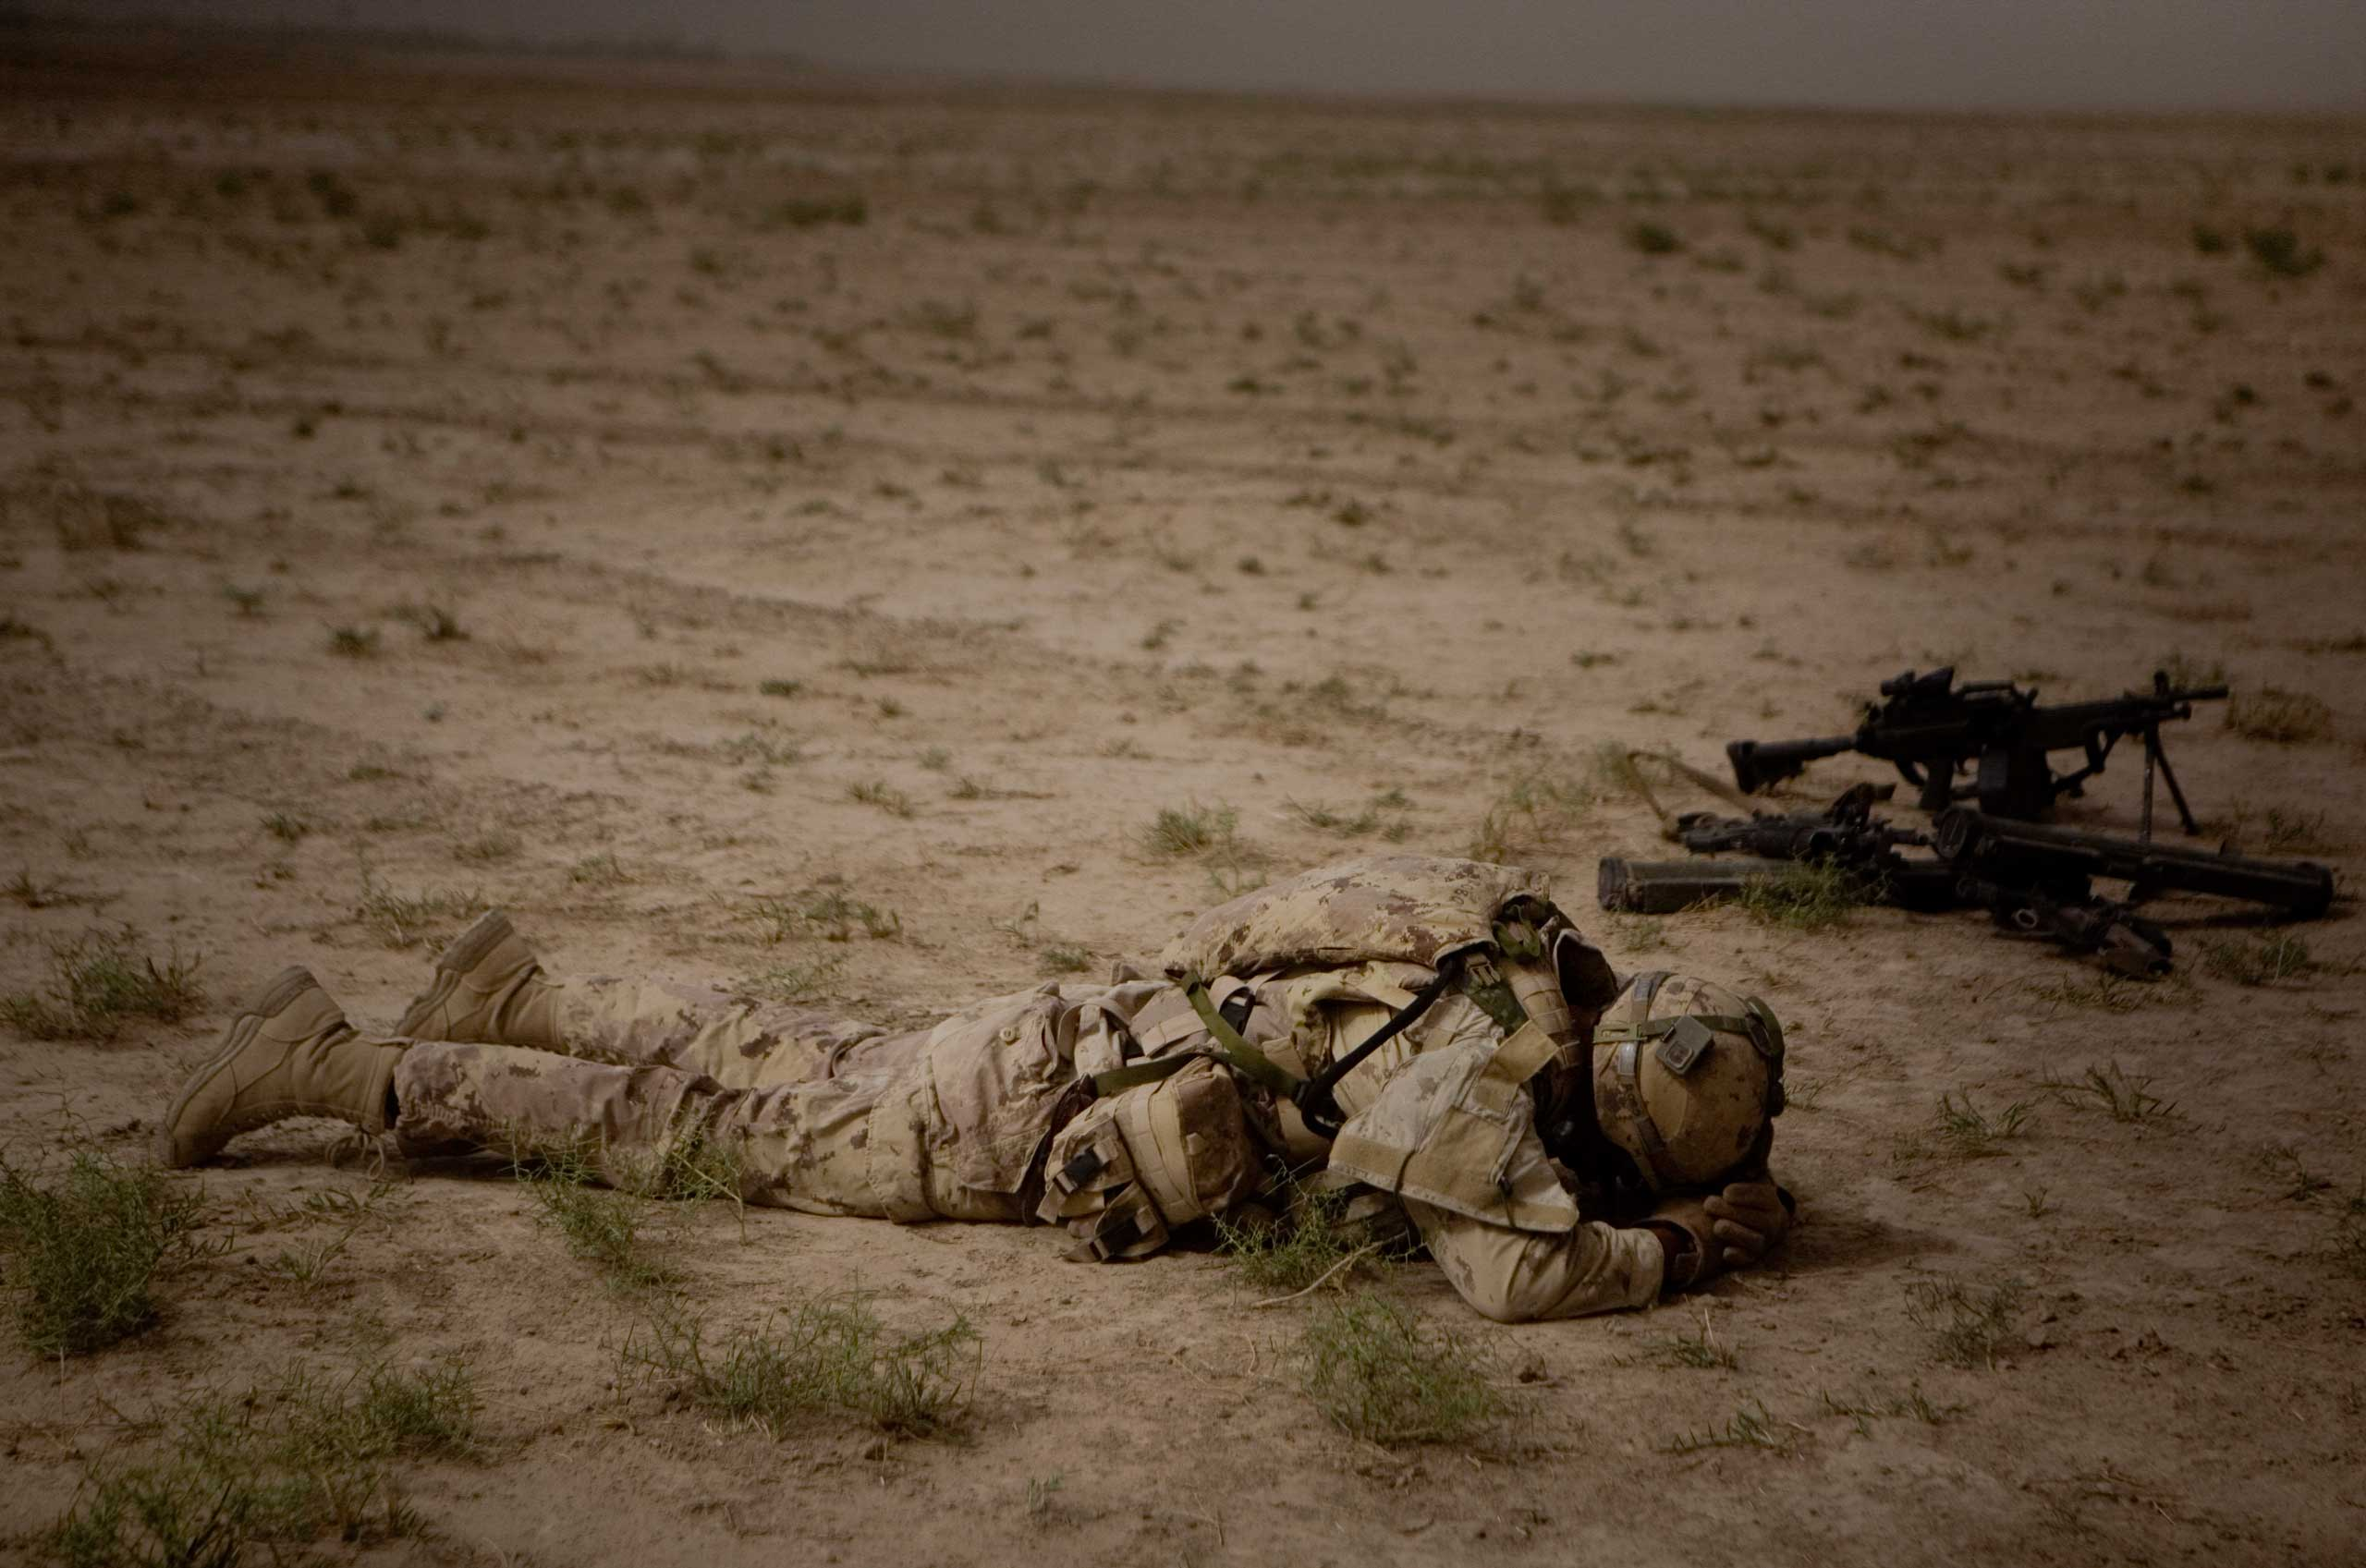 A Canadian soldier with the 1st Battalion, The Royal Canadian Regiment rests next to his guns after a mission in Khebari Ghar in the Panjwayi district, south-west of Kandahar, Afghanistan, June 3, 2010.